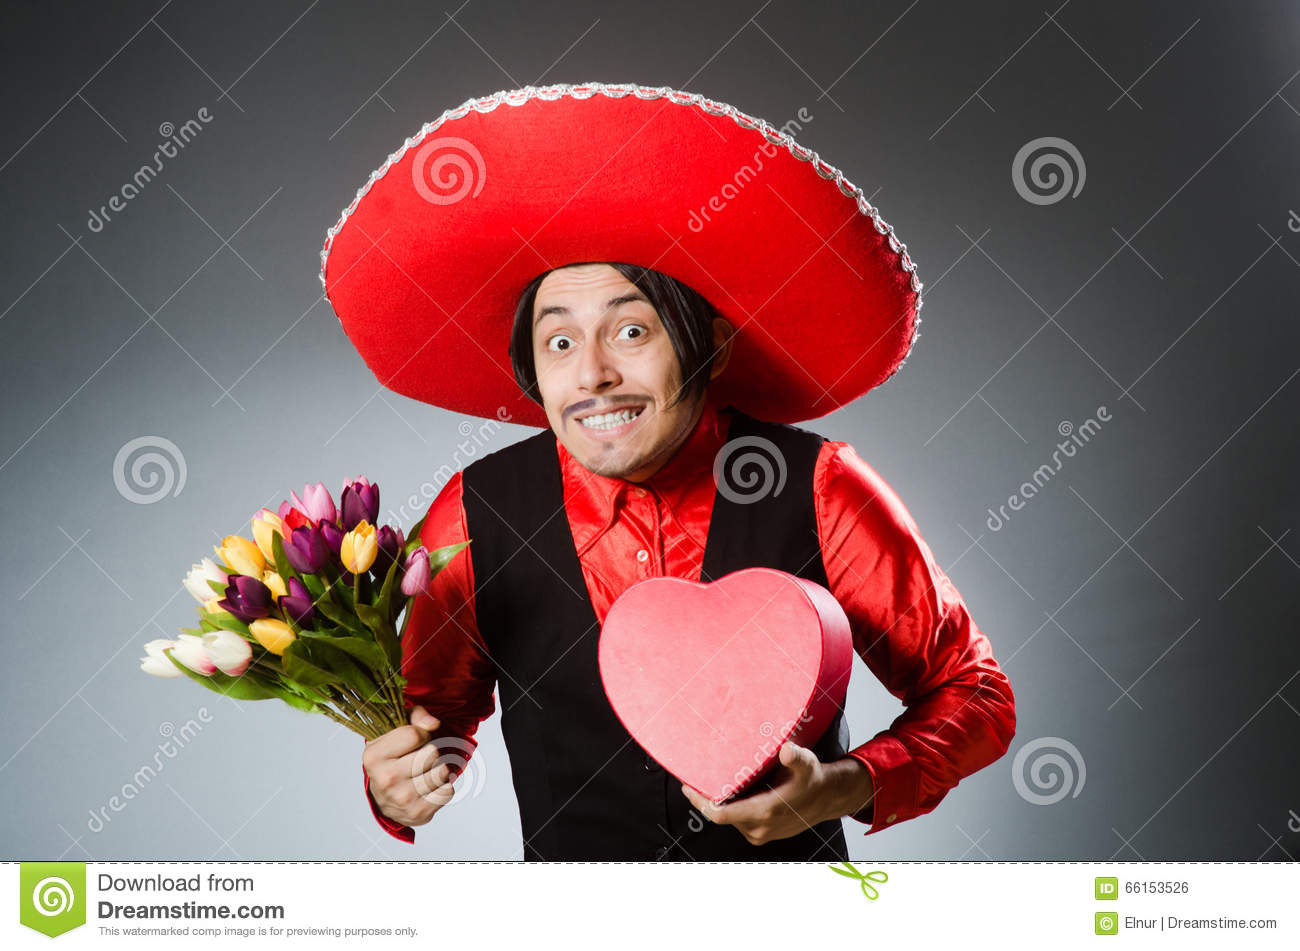 Royalty-Free Stock Photo. The person wearing sombrero hat in funny concept aea135af086